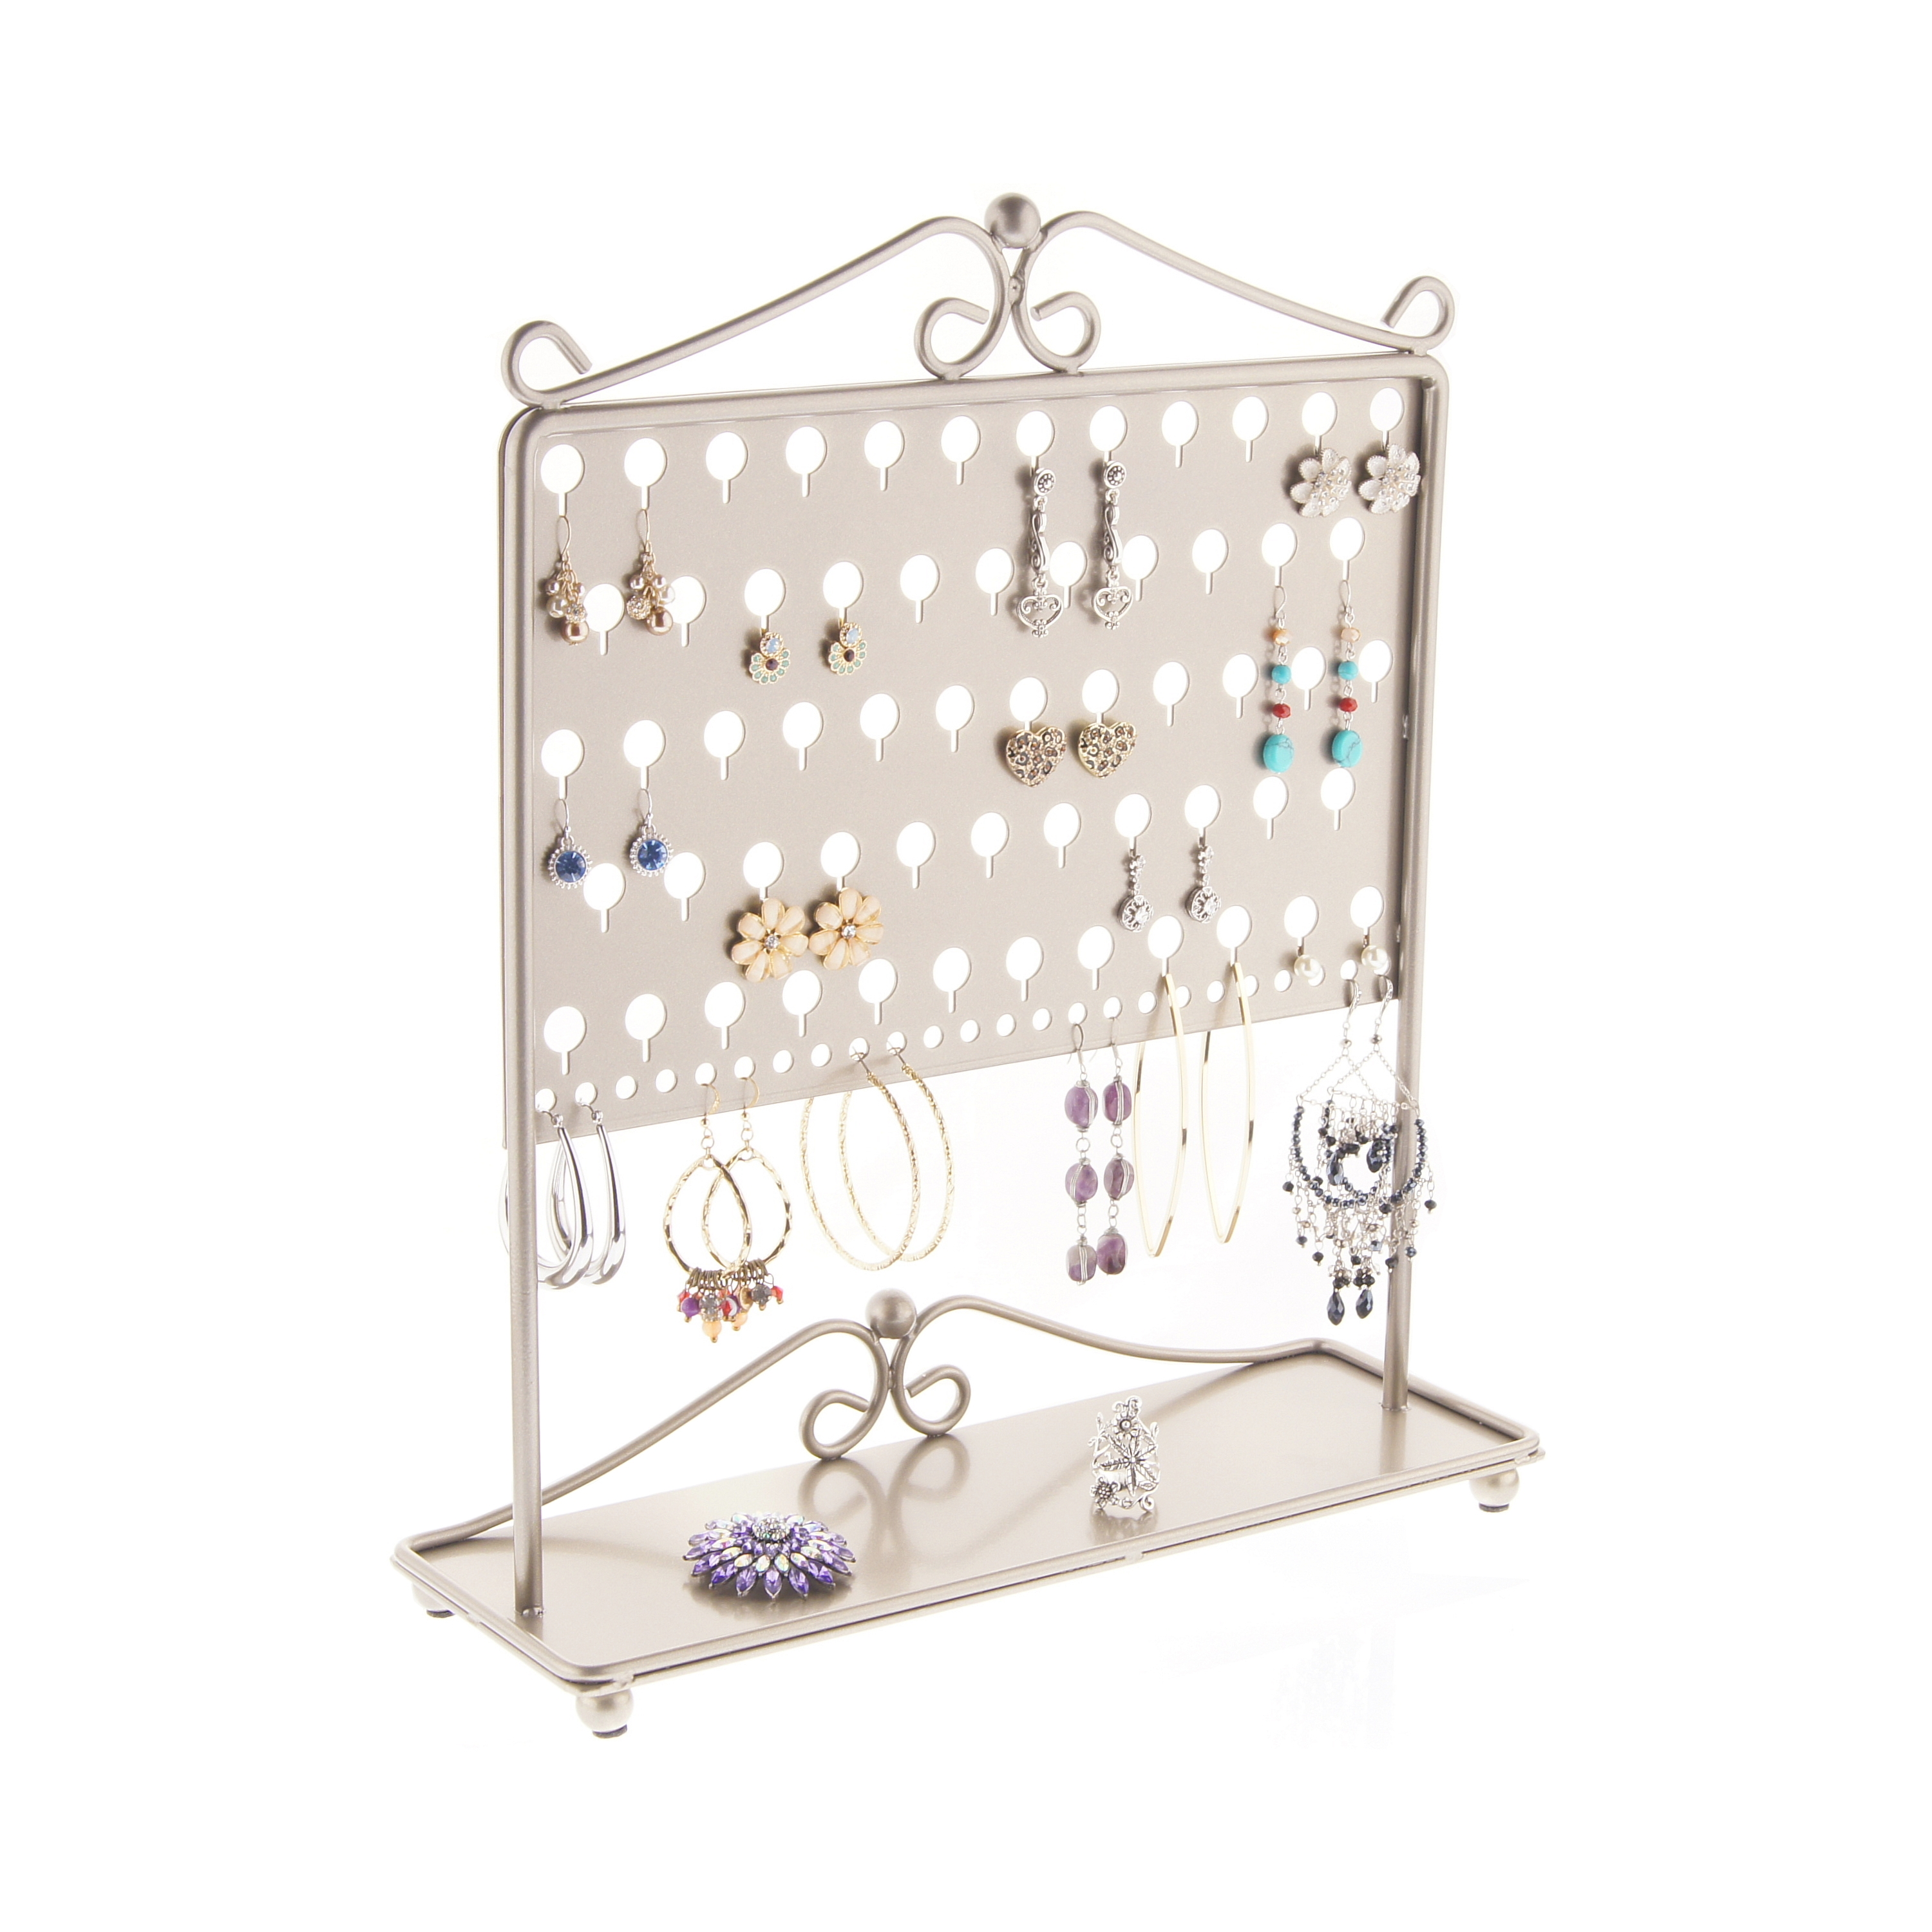 Earring Holder Stand Jewelry Organizer Display Storage Rack with Tray, Angelynn's Ginger Earring Angel Satin... by Angelynn's Jewelry Organizers